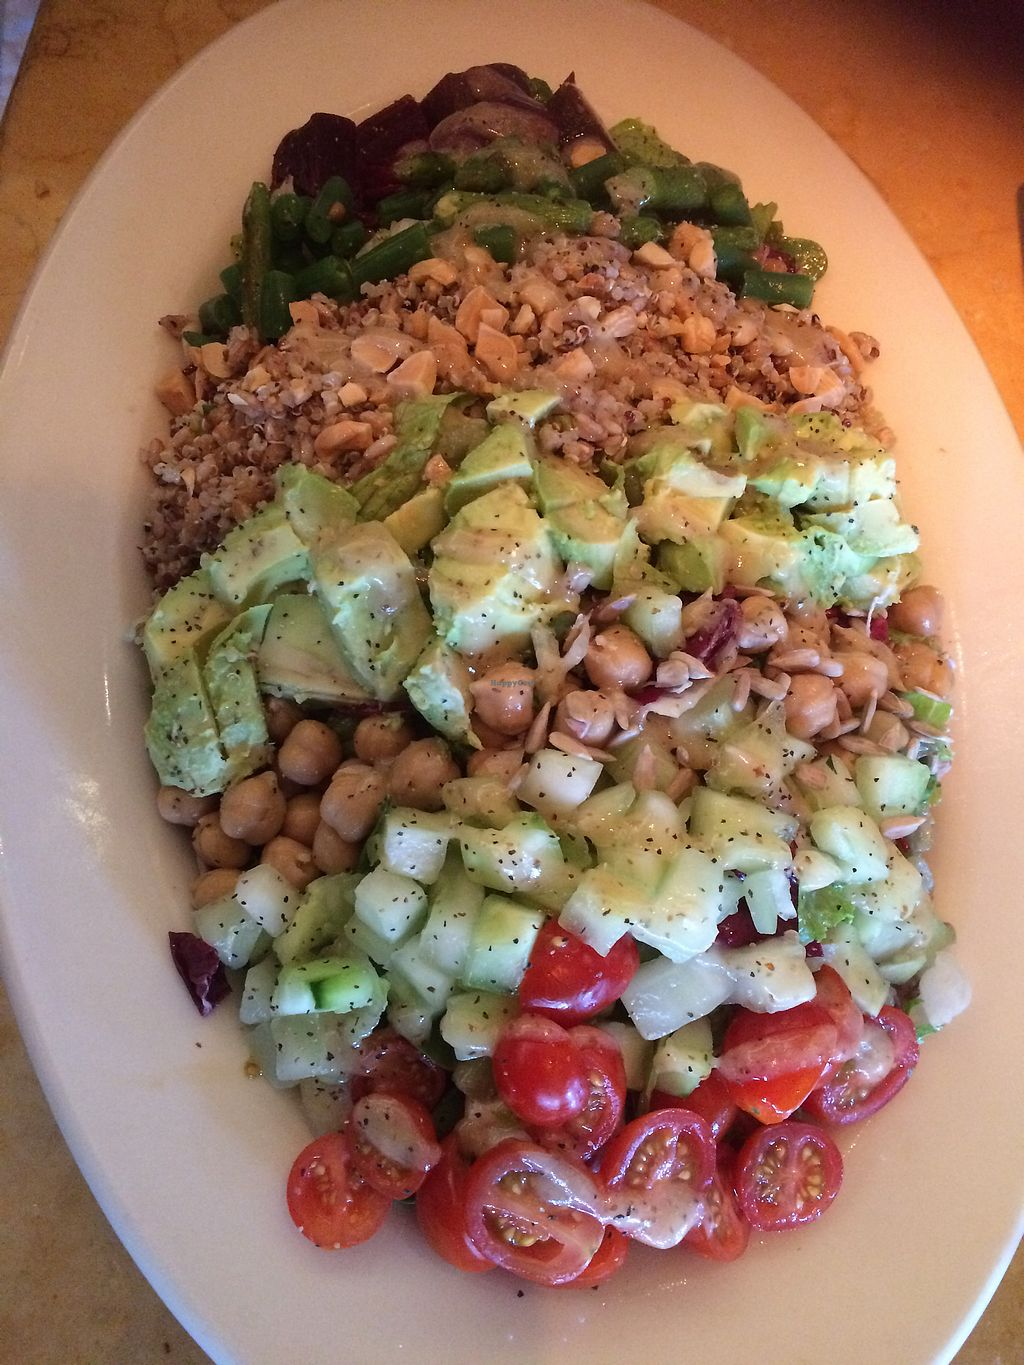 """Photo of The Cheesecake Factory  by <a href=""""/members/profile/fruitiJulie"""">fruitiJulie</a> <br/>Vegan Cobb salad <br/> November 21, 2017  - <a href='/contact/abuse/image/103994/327879'>Report</a>"""